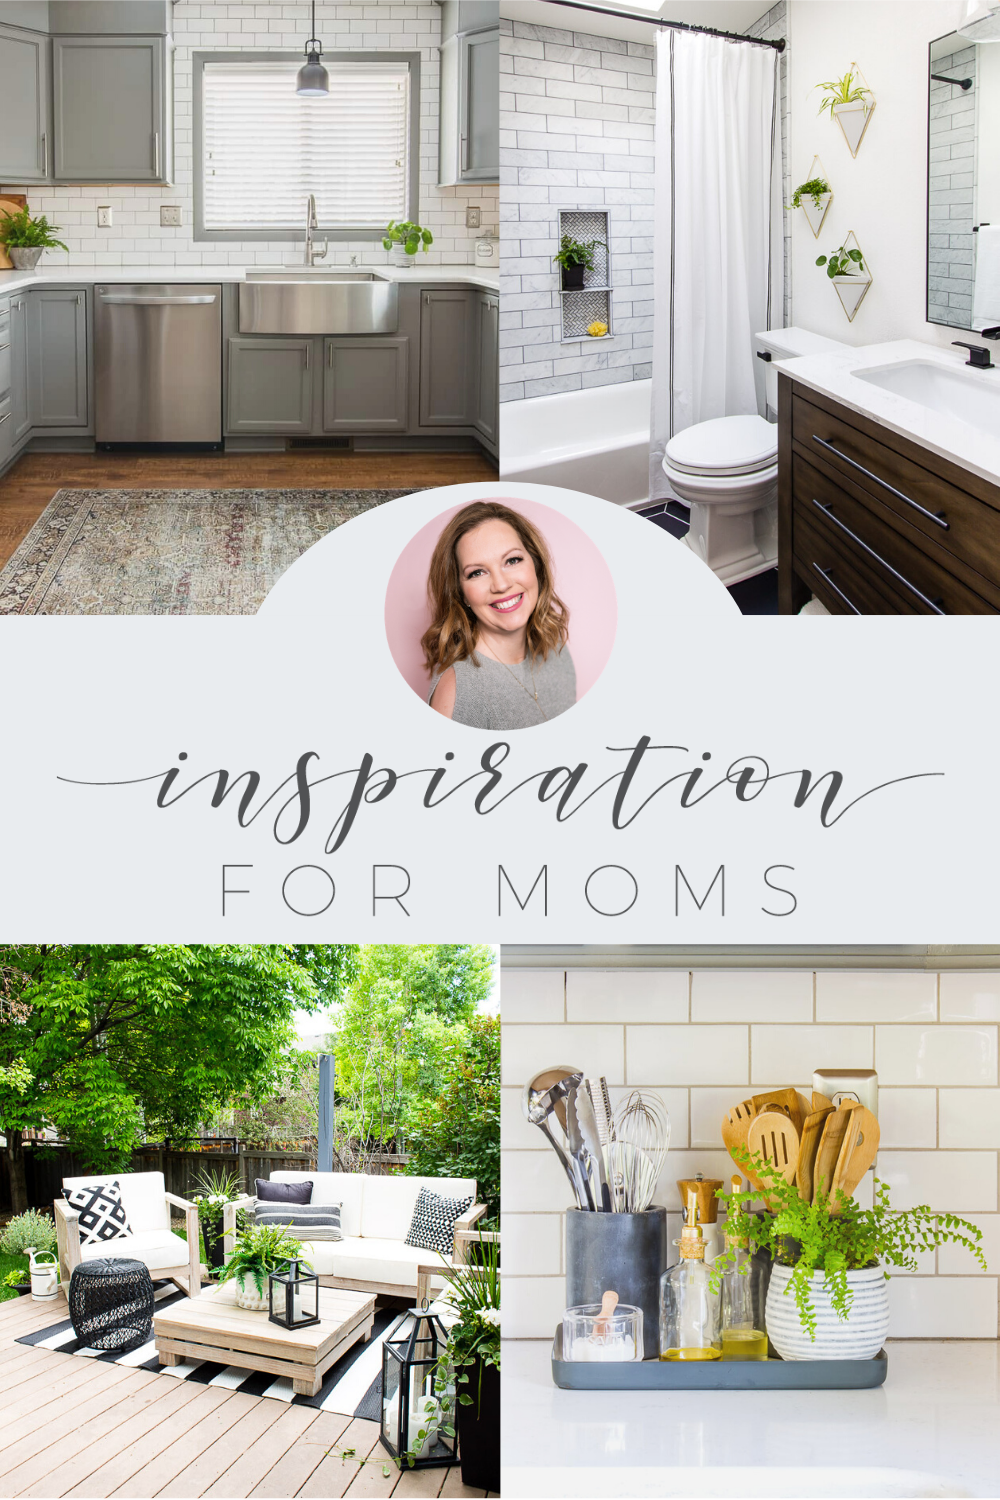 Collection of home decor from Inspiration for Moms.